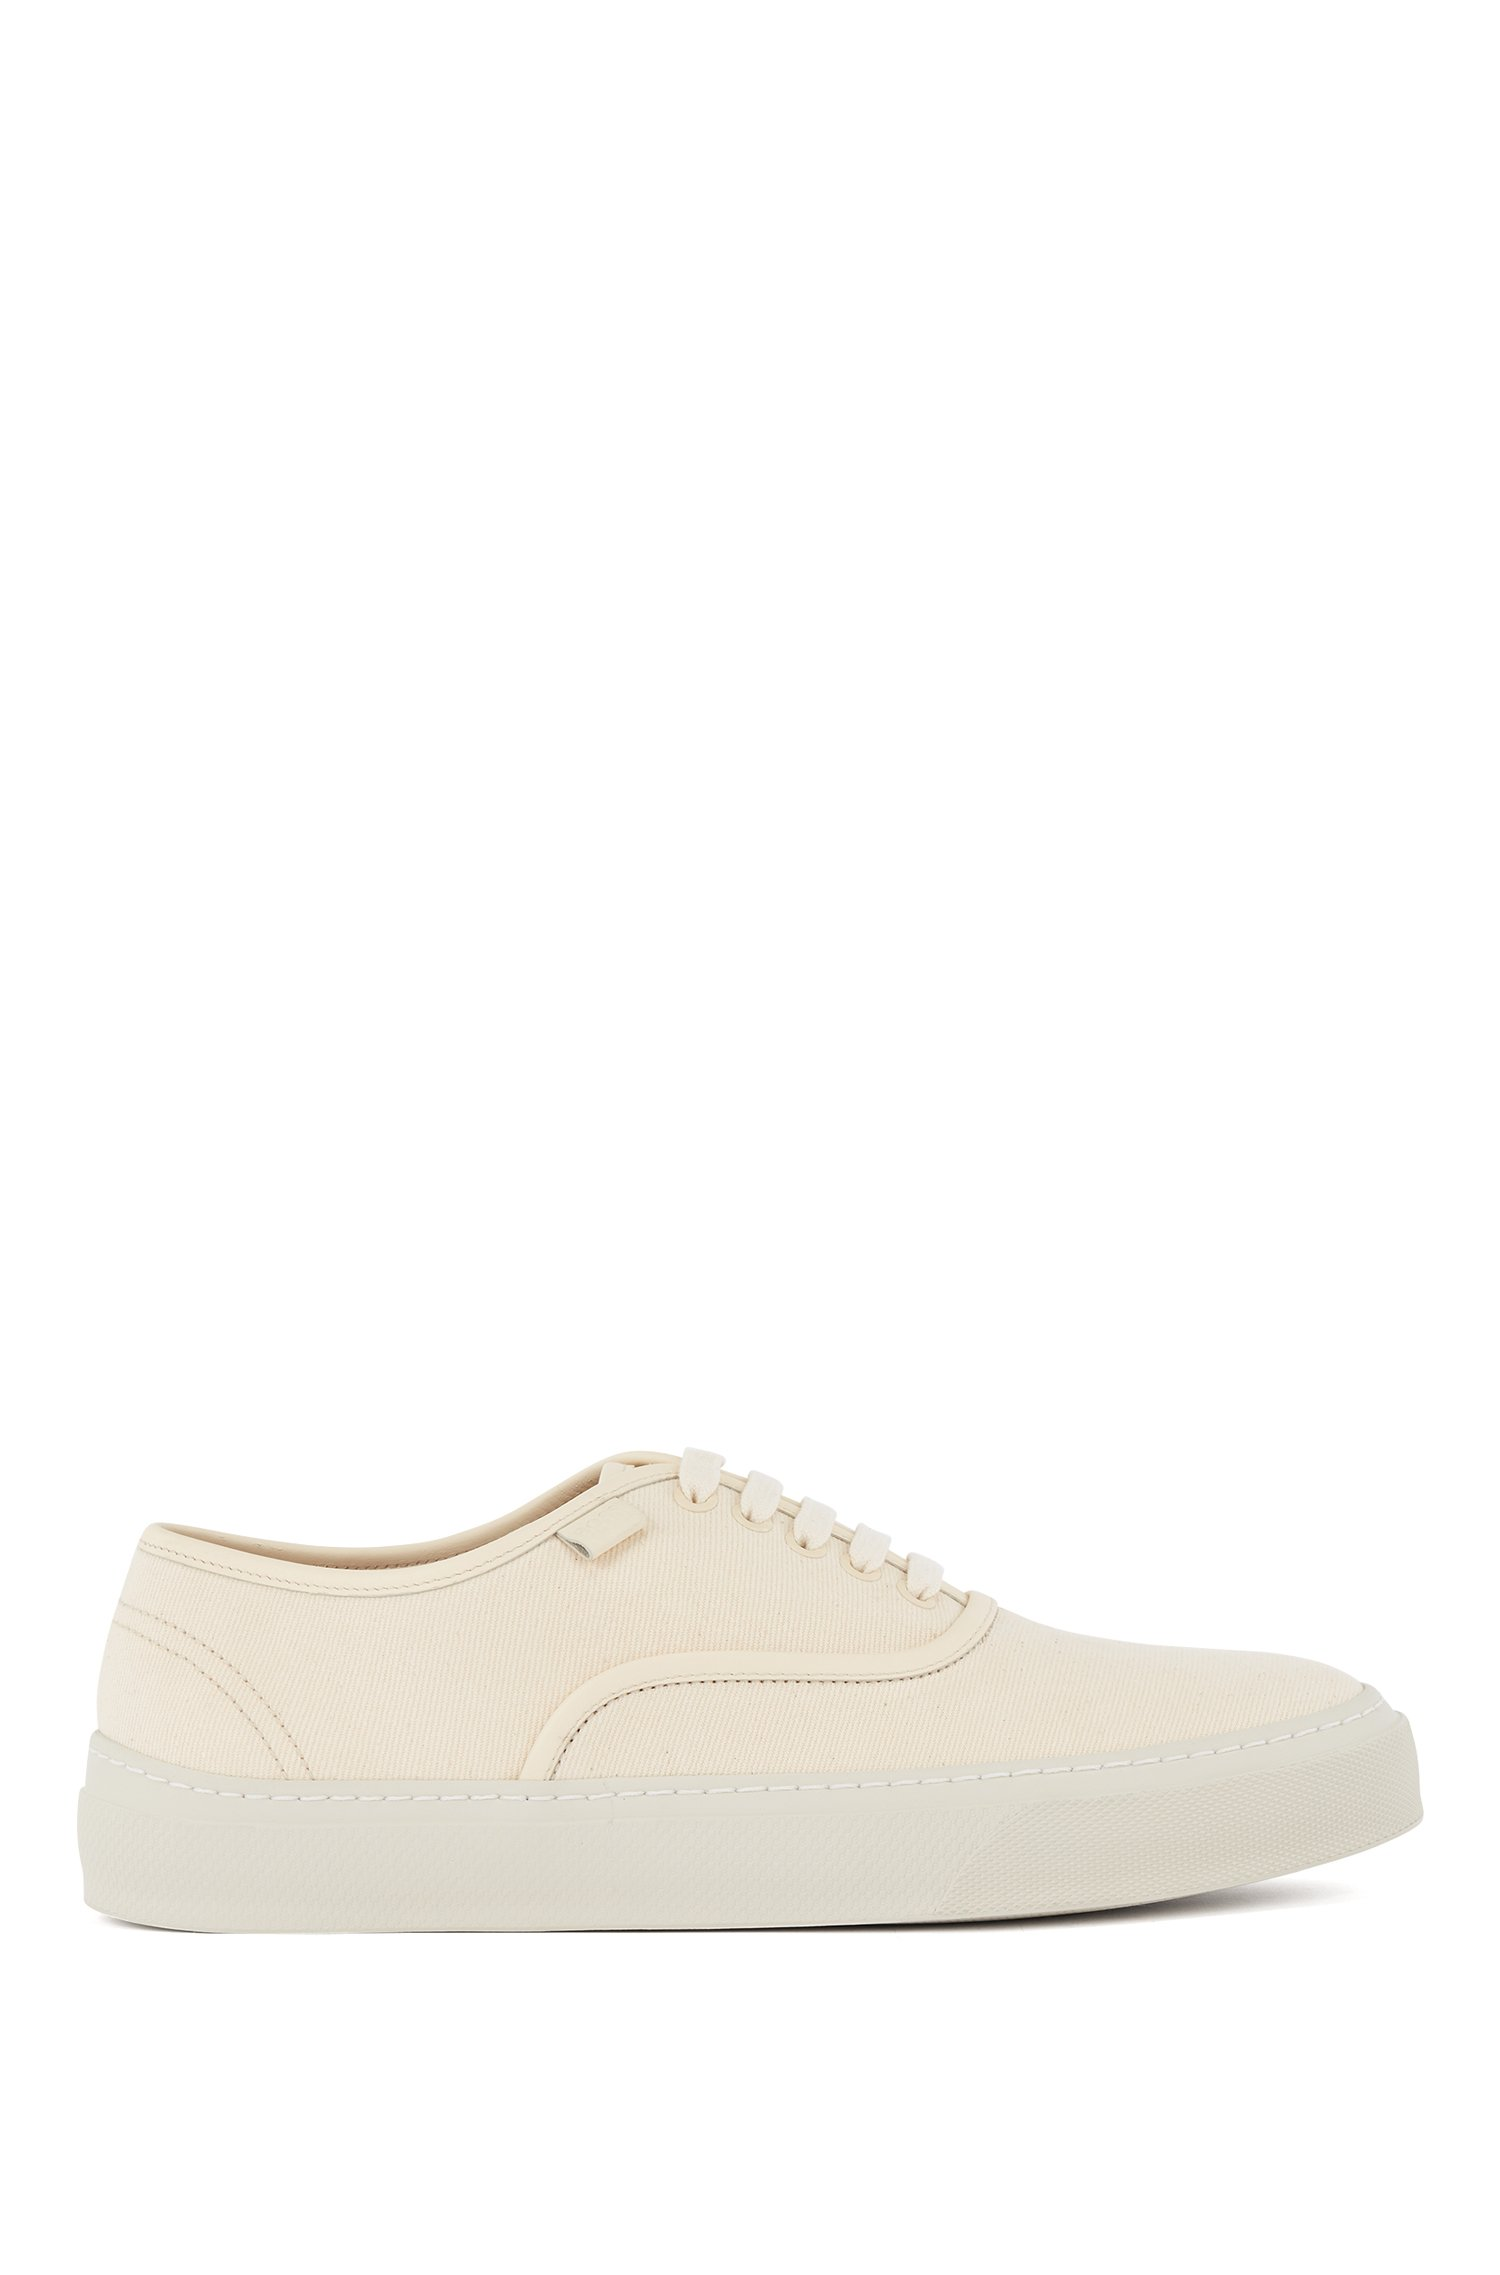 Italian-made trainers with organic-cotton-blend uppers, Light Beige